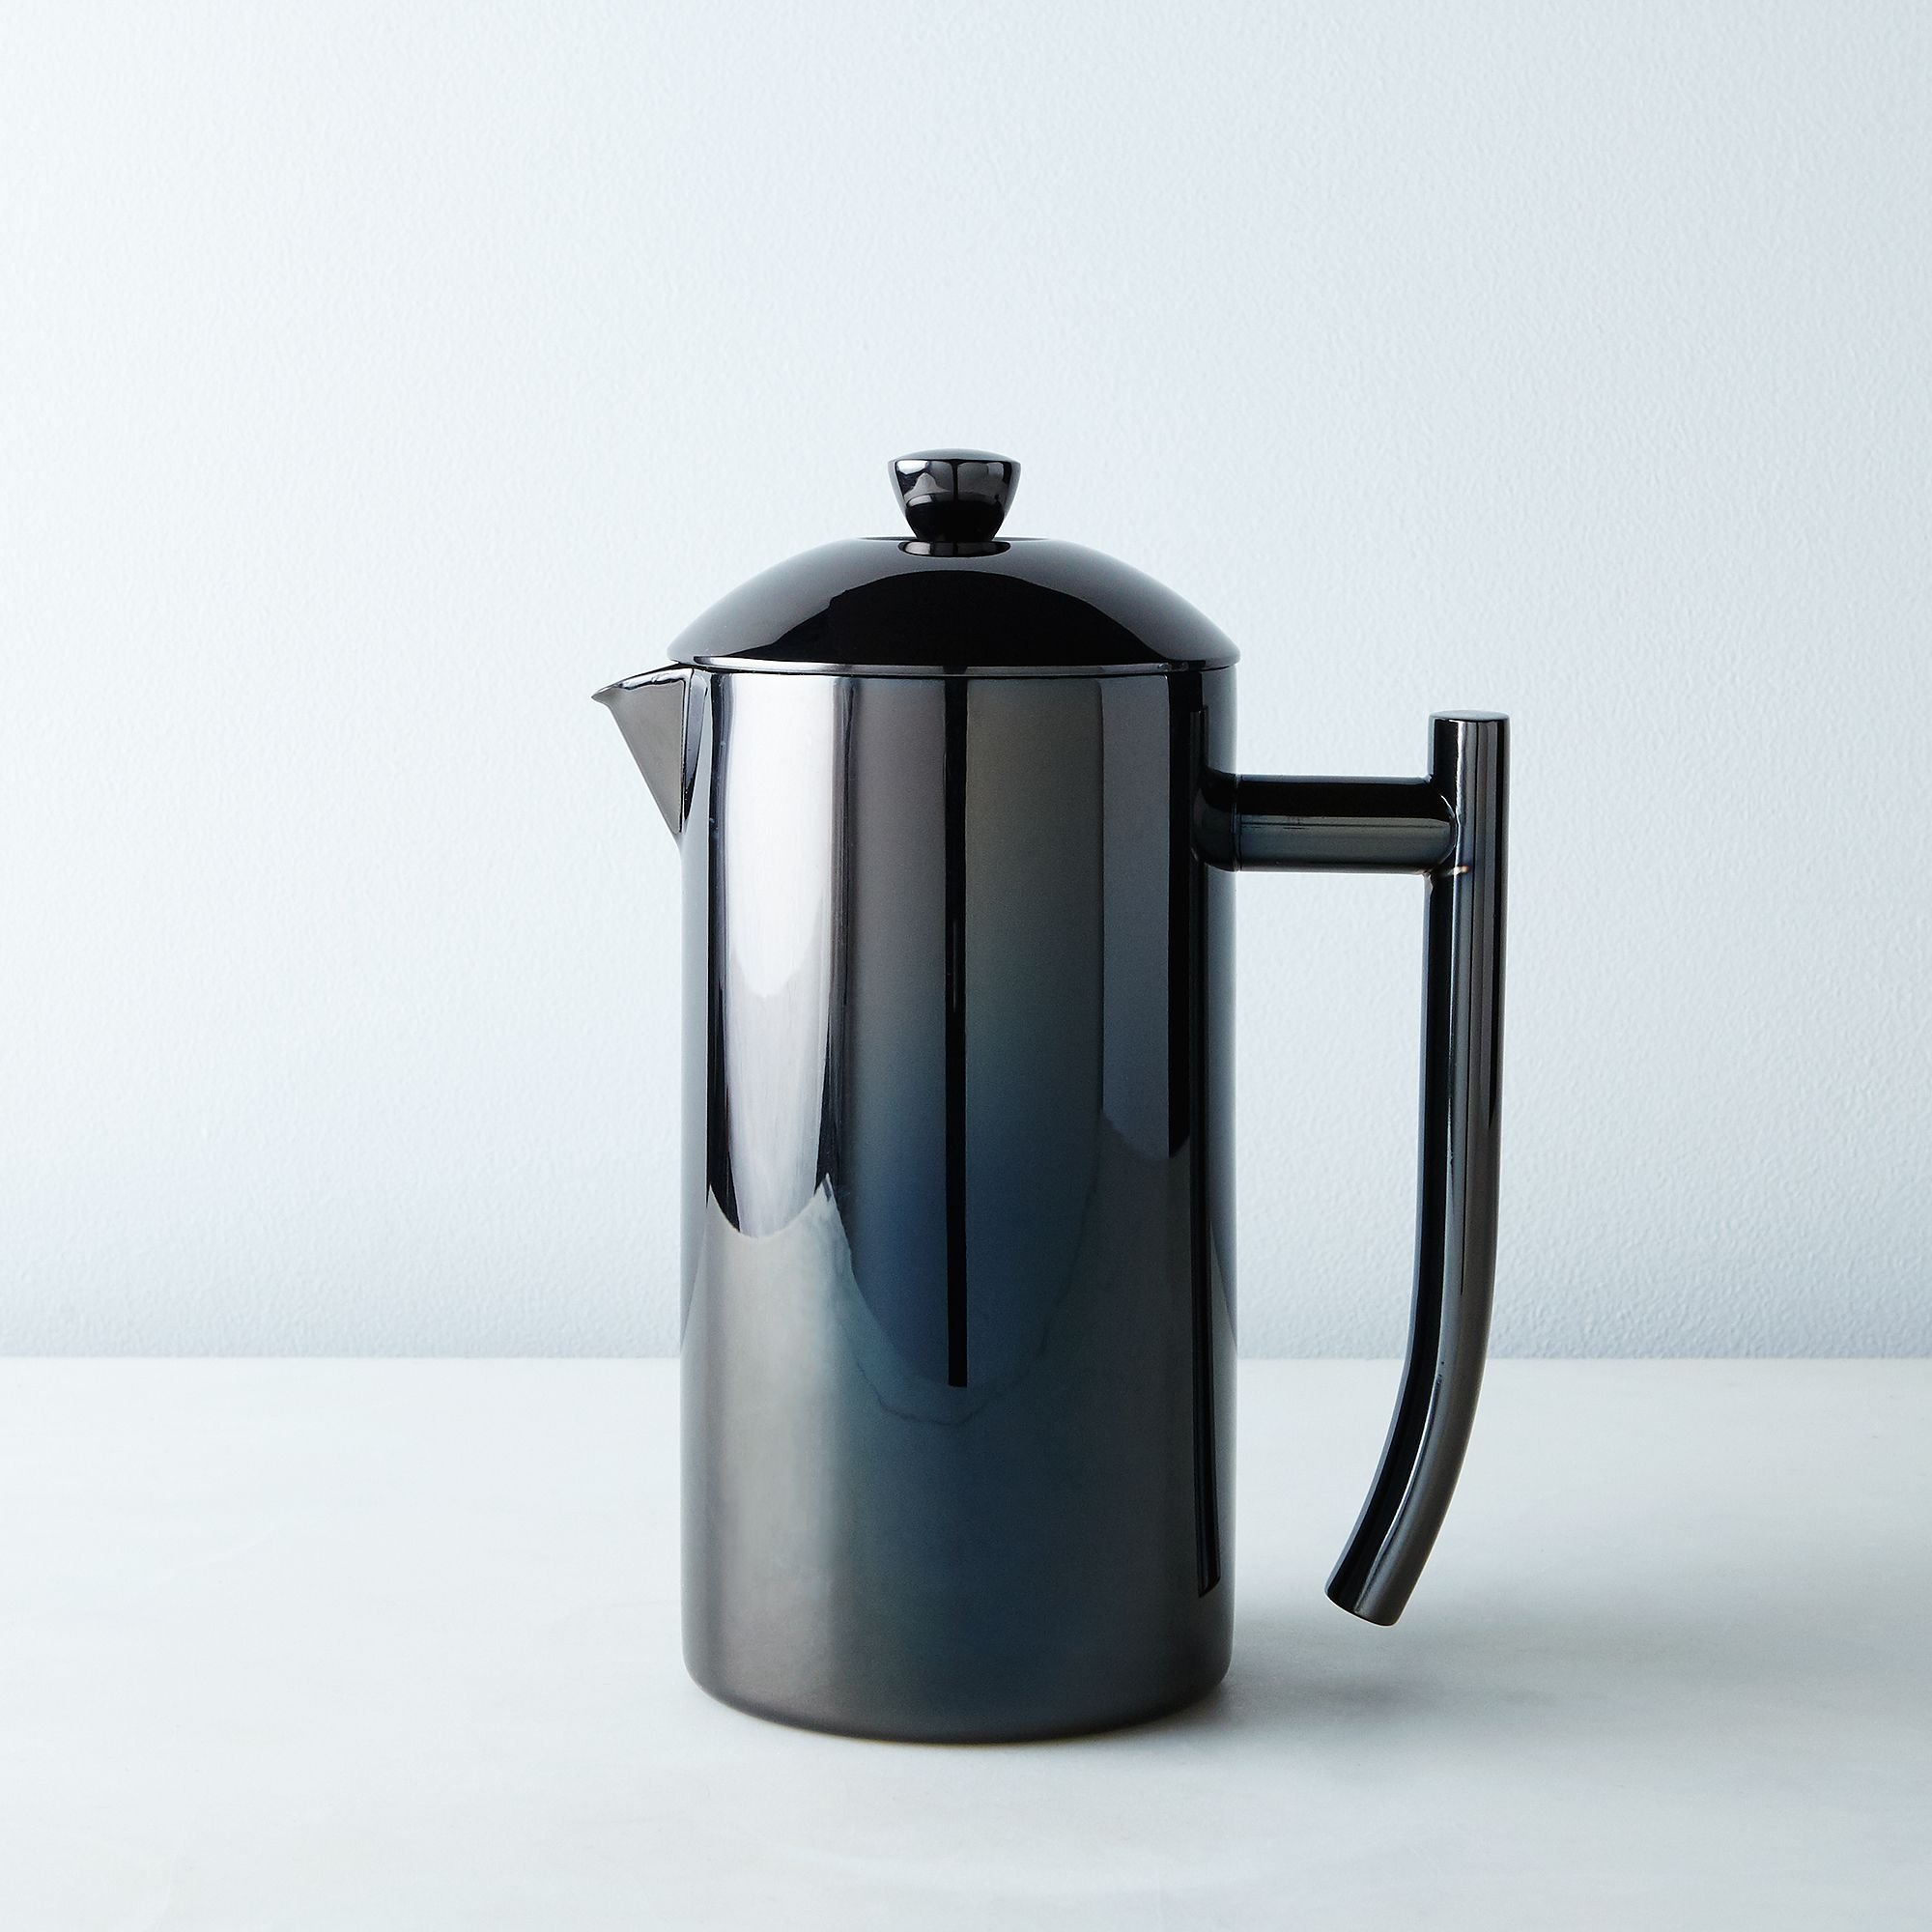 Double-Walled French Press at Food52